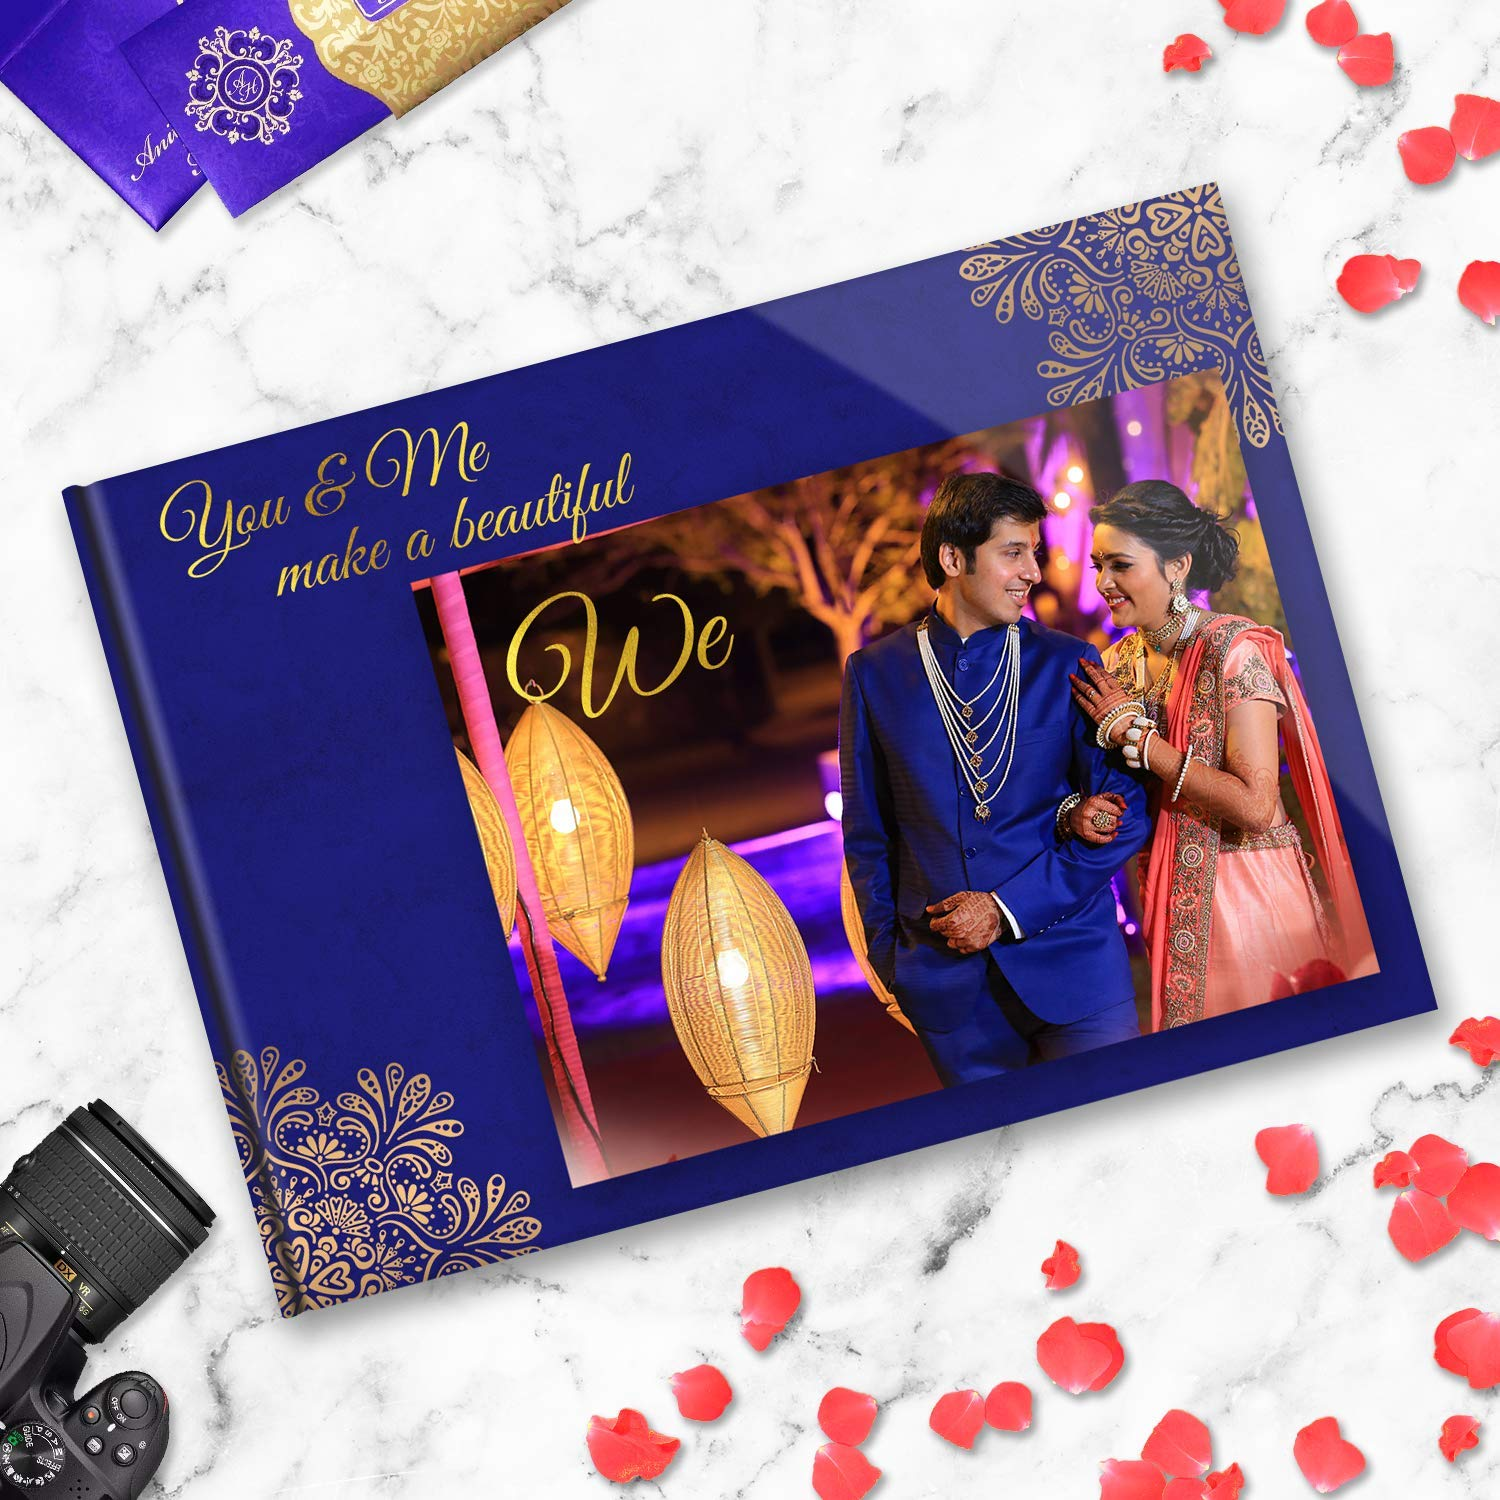 Presto Personalized Photo Album Digital Romantic Wedding Gift For Couples 18 X 12 Amazon In Office Products